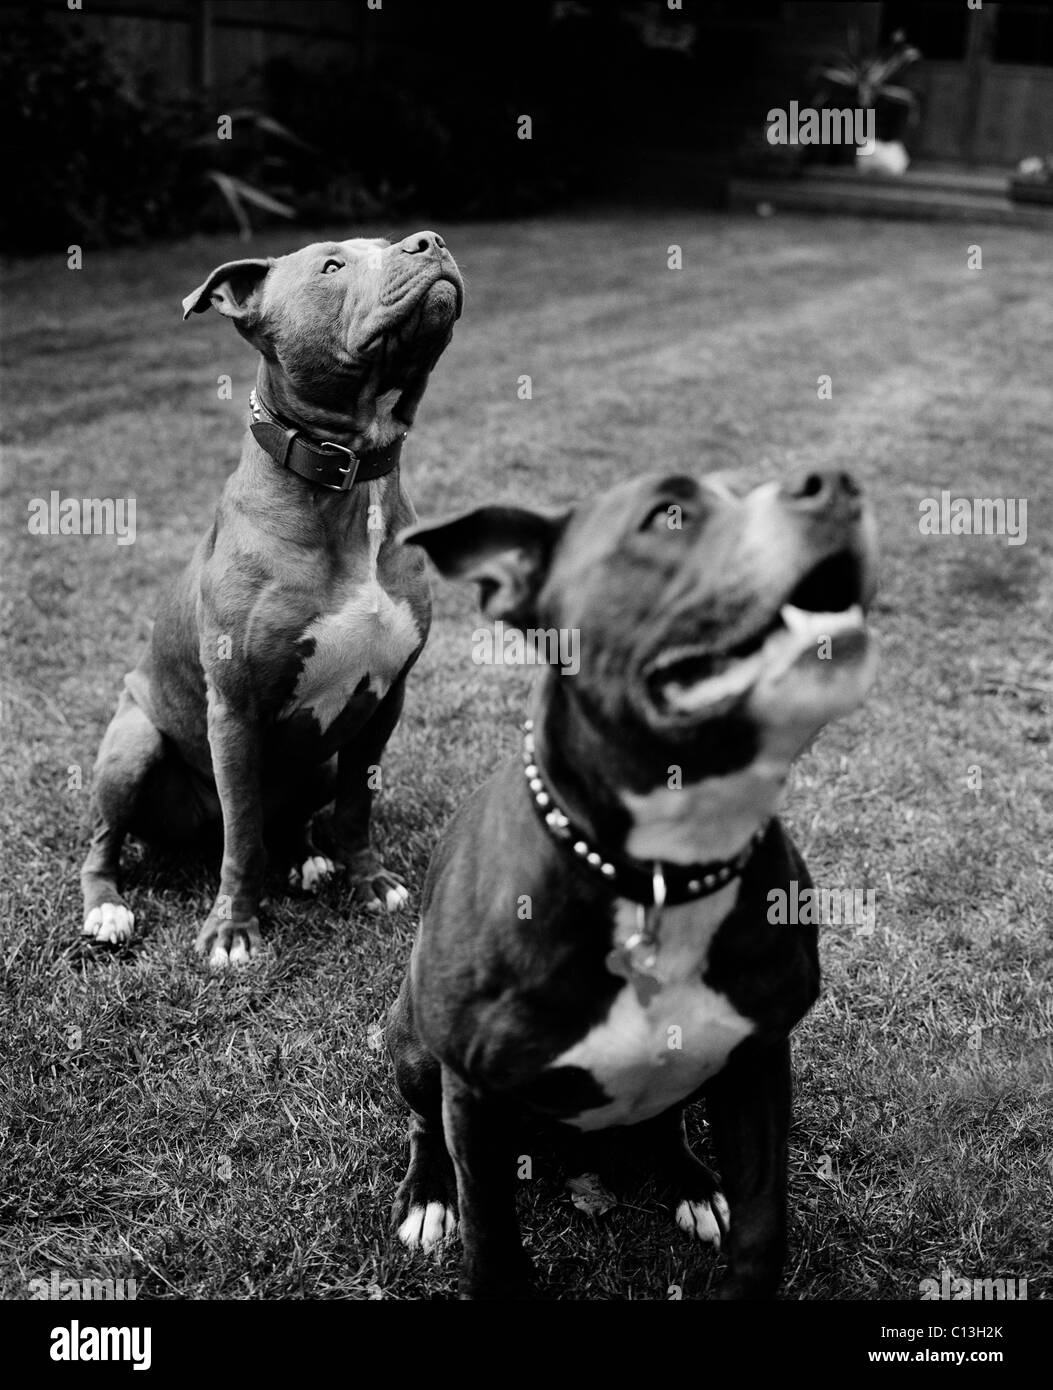 Two Staffordshire bull terriers sitting in a garden - Stock Image